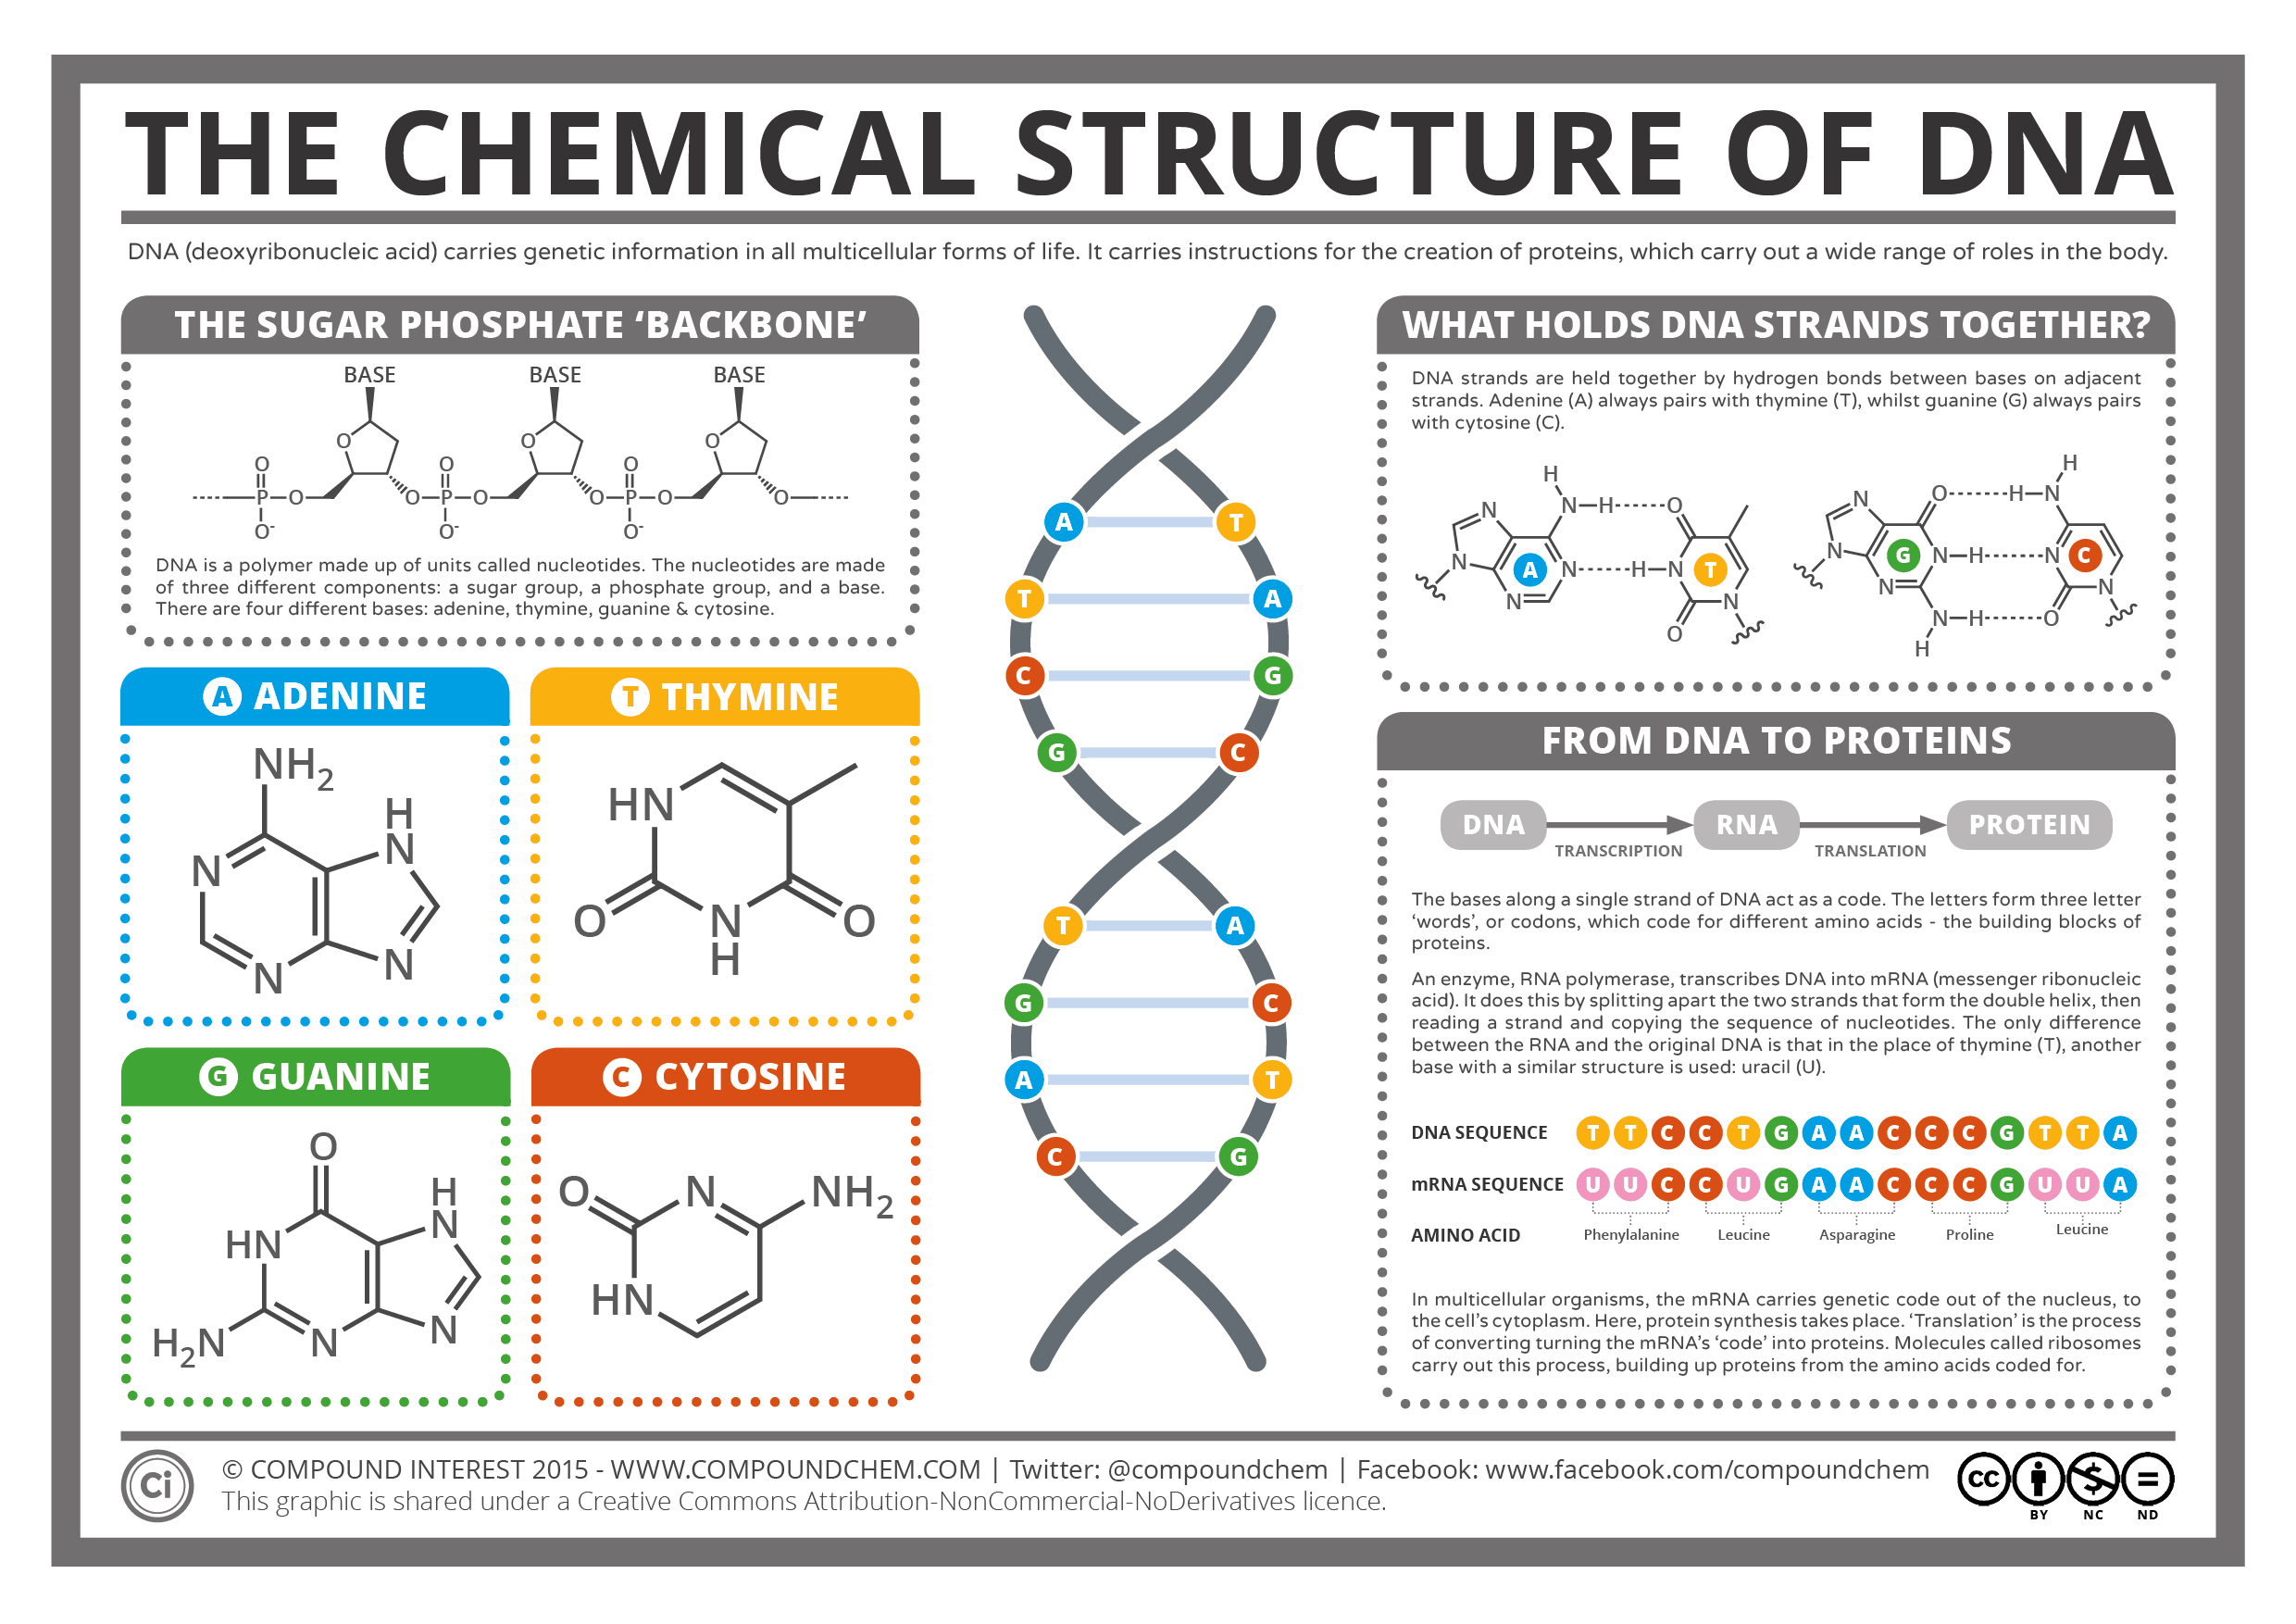 an analysis of the characteristics of dna deoxyribonucleic acid and the possibilities of dna technol The forensic dna laboratory utilizes methods to identify individuals by characteristics within their deoxyribonucleic acid (dna) dna is a blueprint for the genetic instructions that make-up a human being.